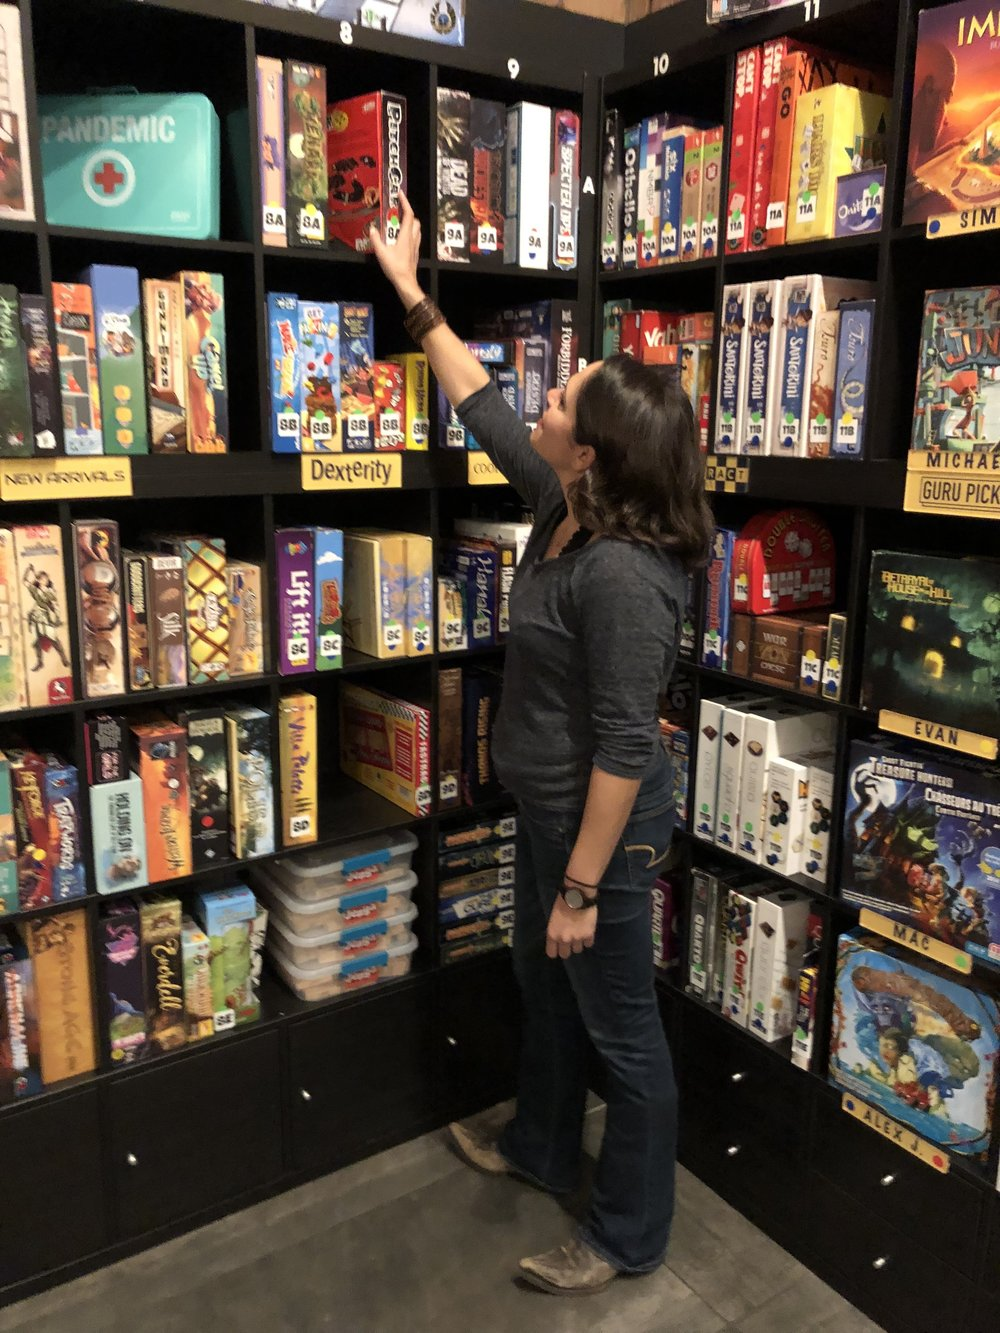 Over 1000 board games at Snakes and Lattes